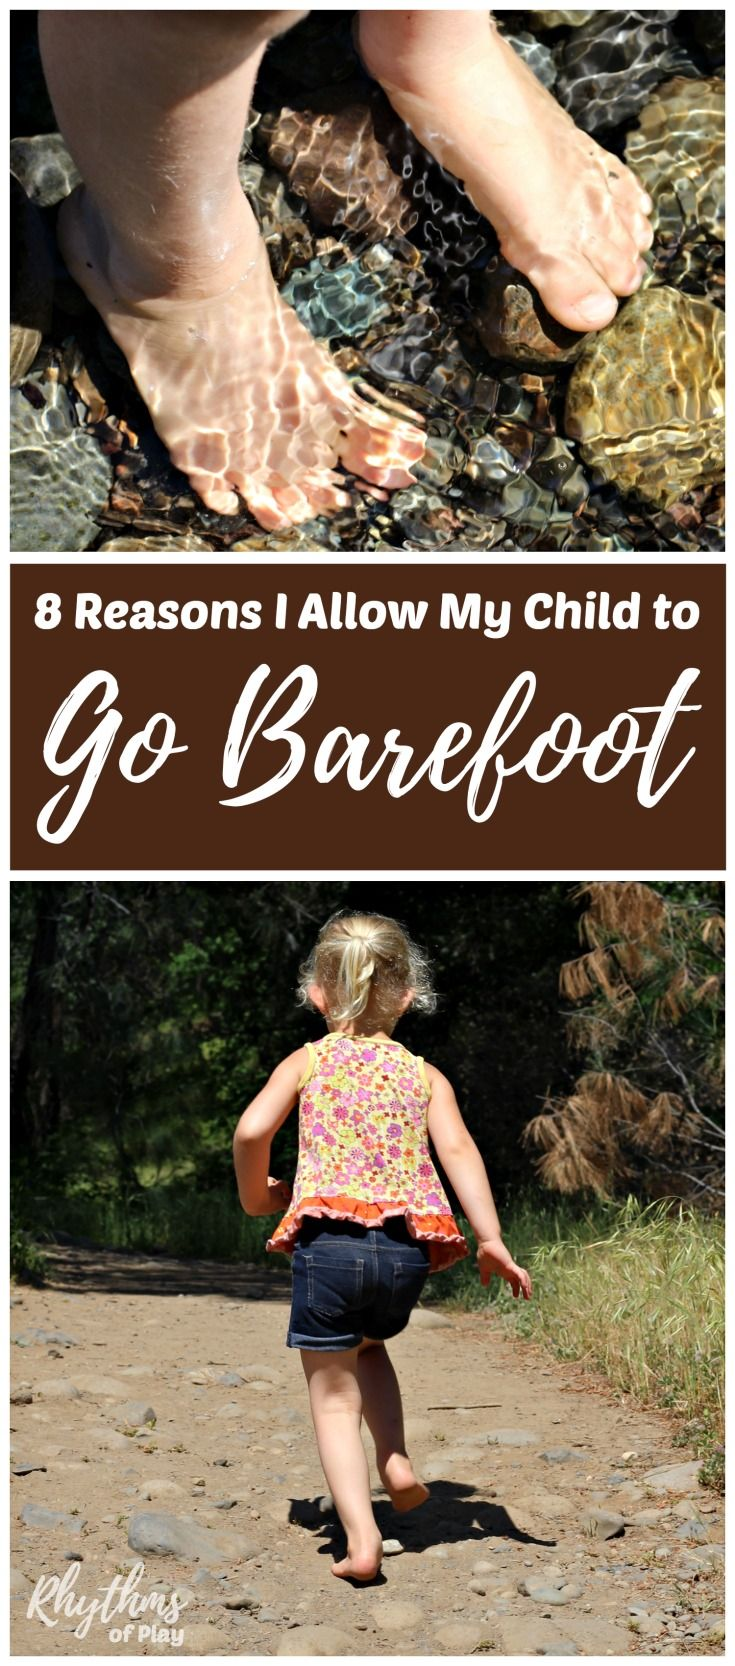 Barefoot health benefits for kids - The feet and sensory systems can develop properly when a child is allowed to go barefoot. Find out all of the amazing health and safety benefits of going barefoot while playing outside! Parenting Tips